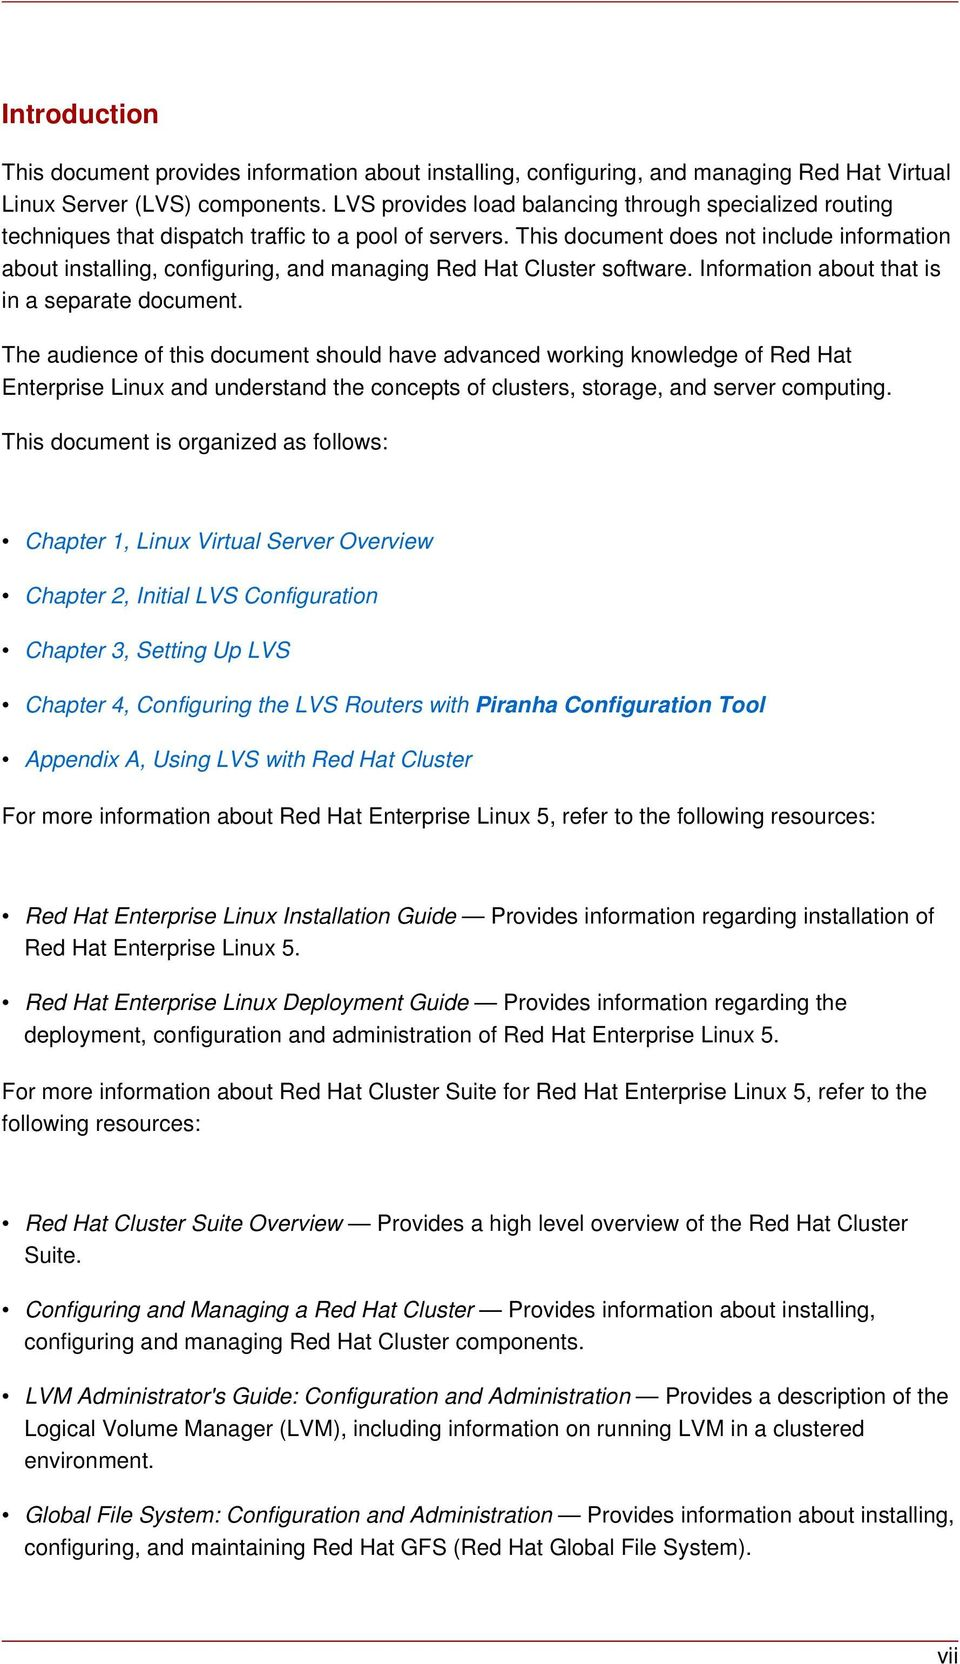 This document does not include information about installing, configuring, and managing Red Hat Cluster software. Information about that is in a separate document.